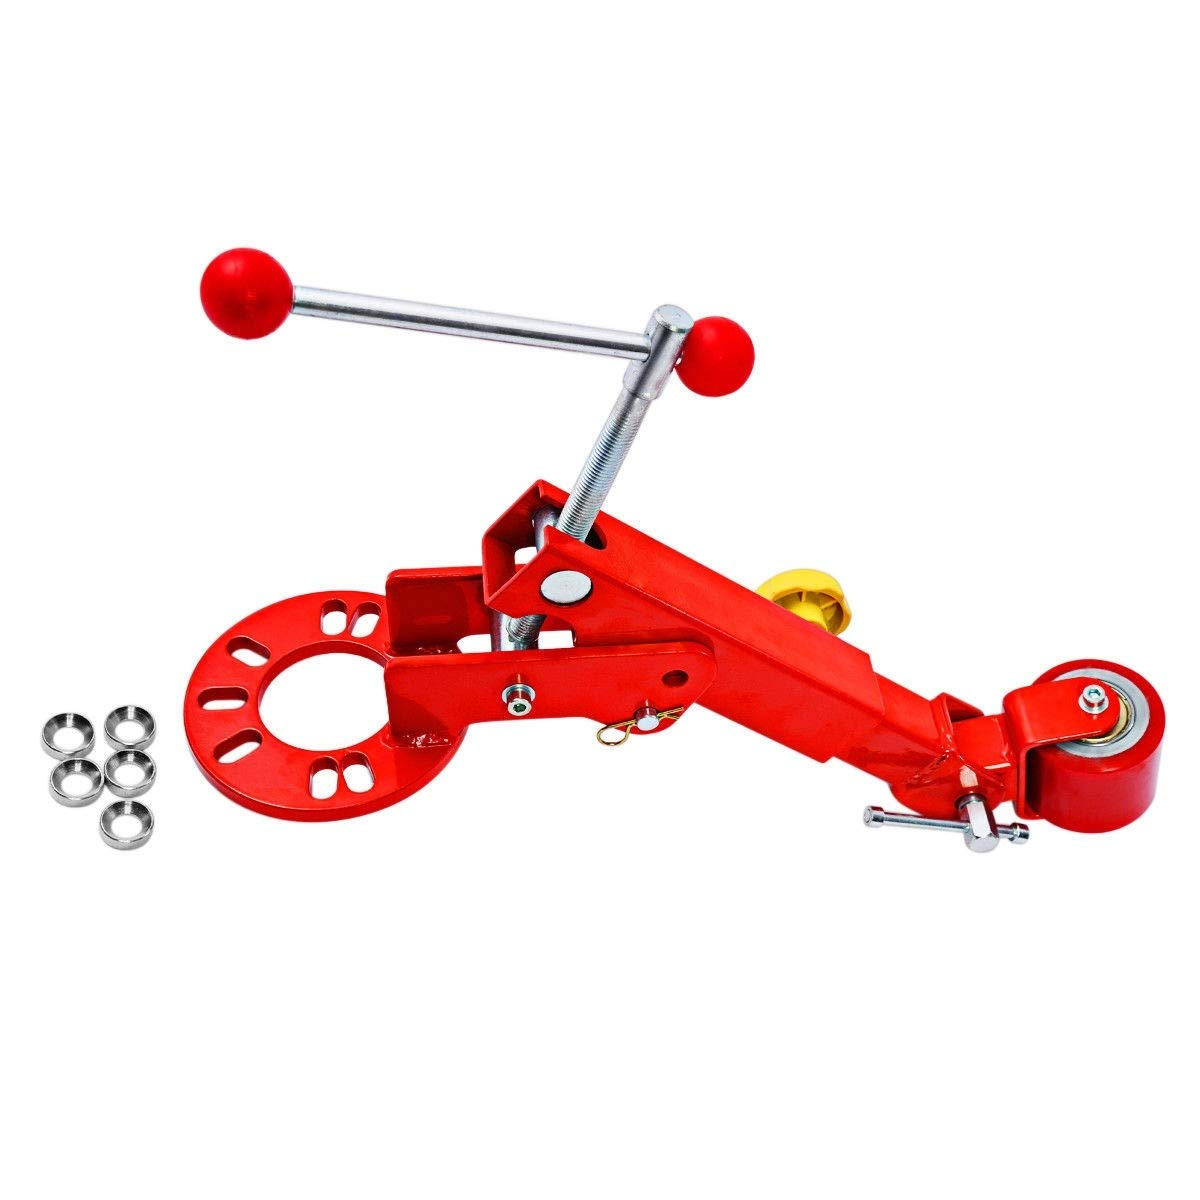 Toolsempire Heavy Duty Fender Rolling Reforming Extending Tool Wheel Arch Roller Flaring Former Red by Toolsempire